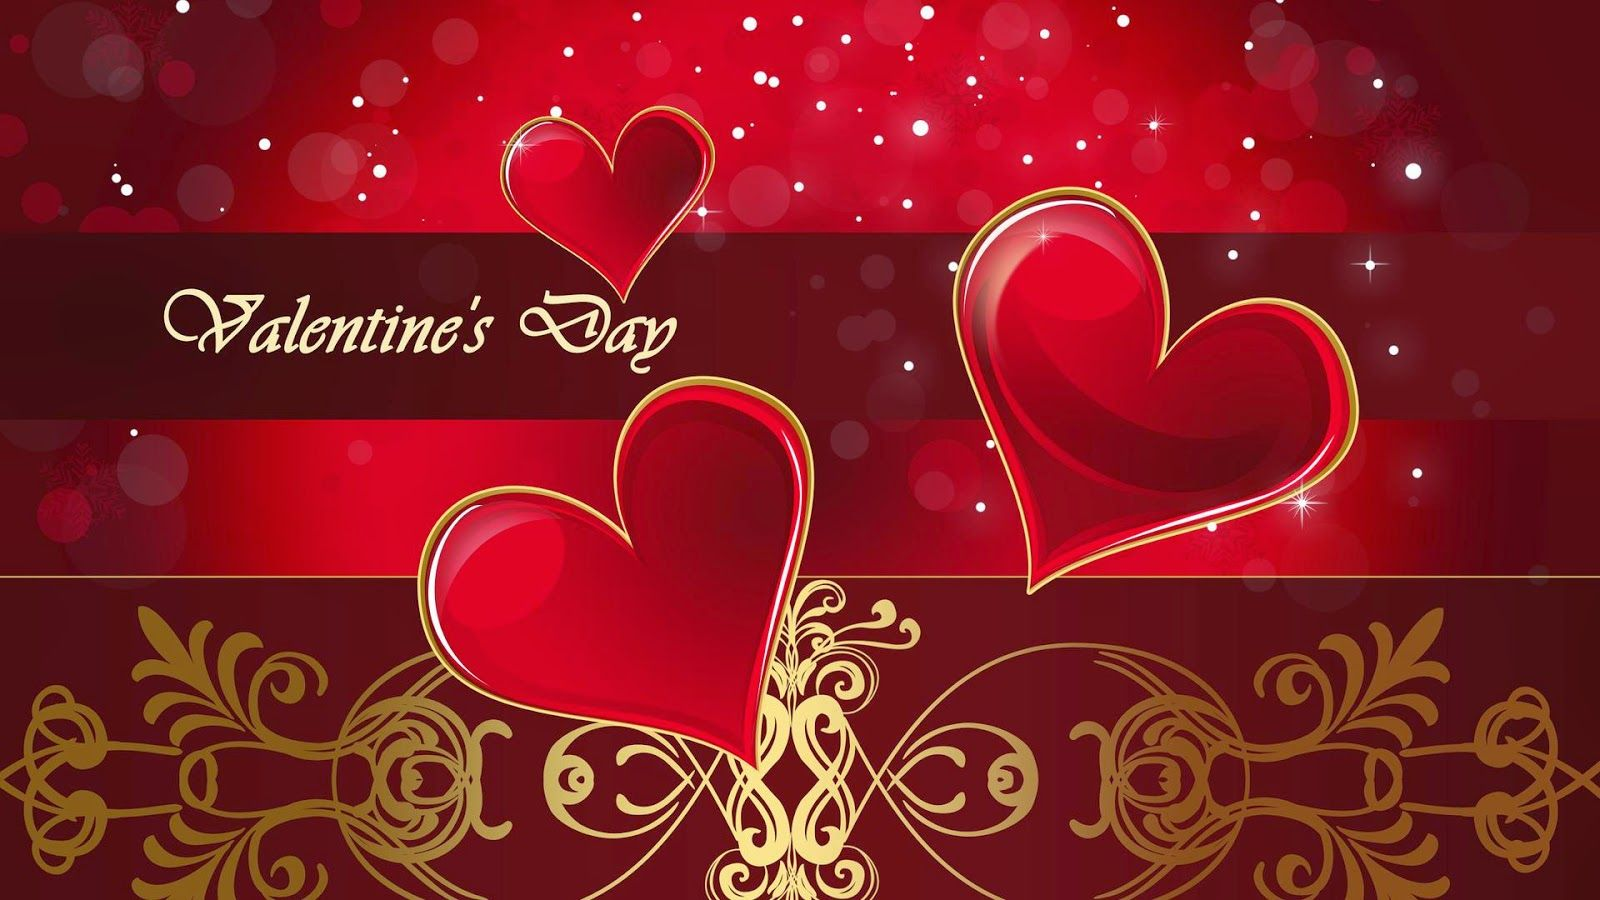 love wallpapers hd desktop backgrounds page 1600900 happy valentines day wallpaper free 51 - Pictures Of Happy Valentines Day